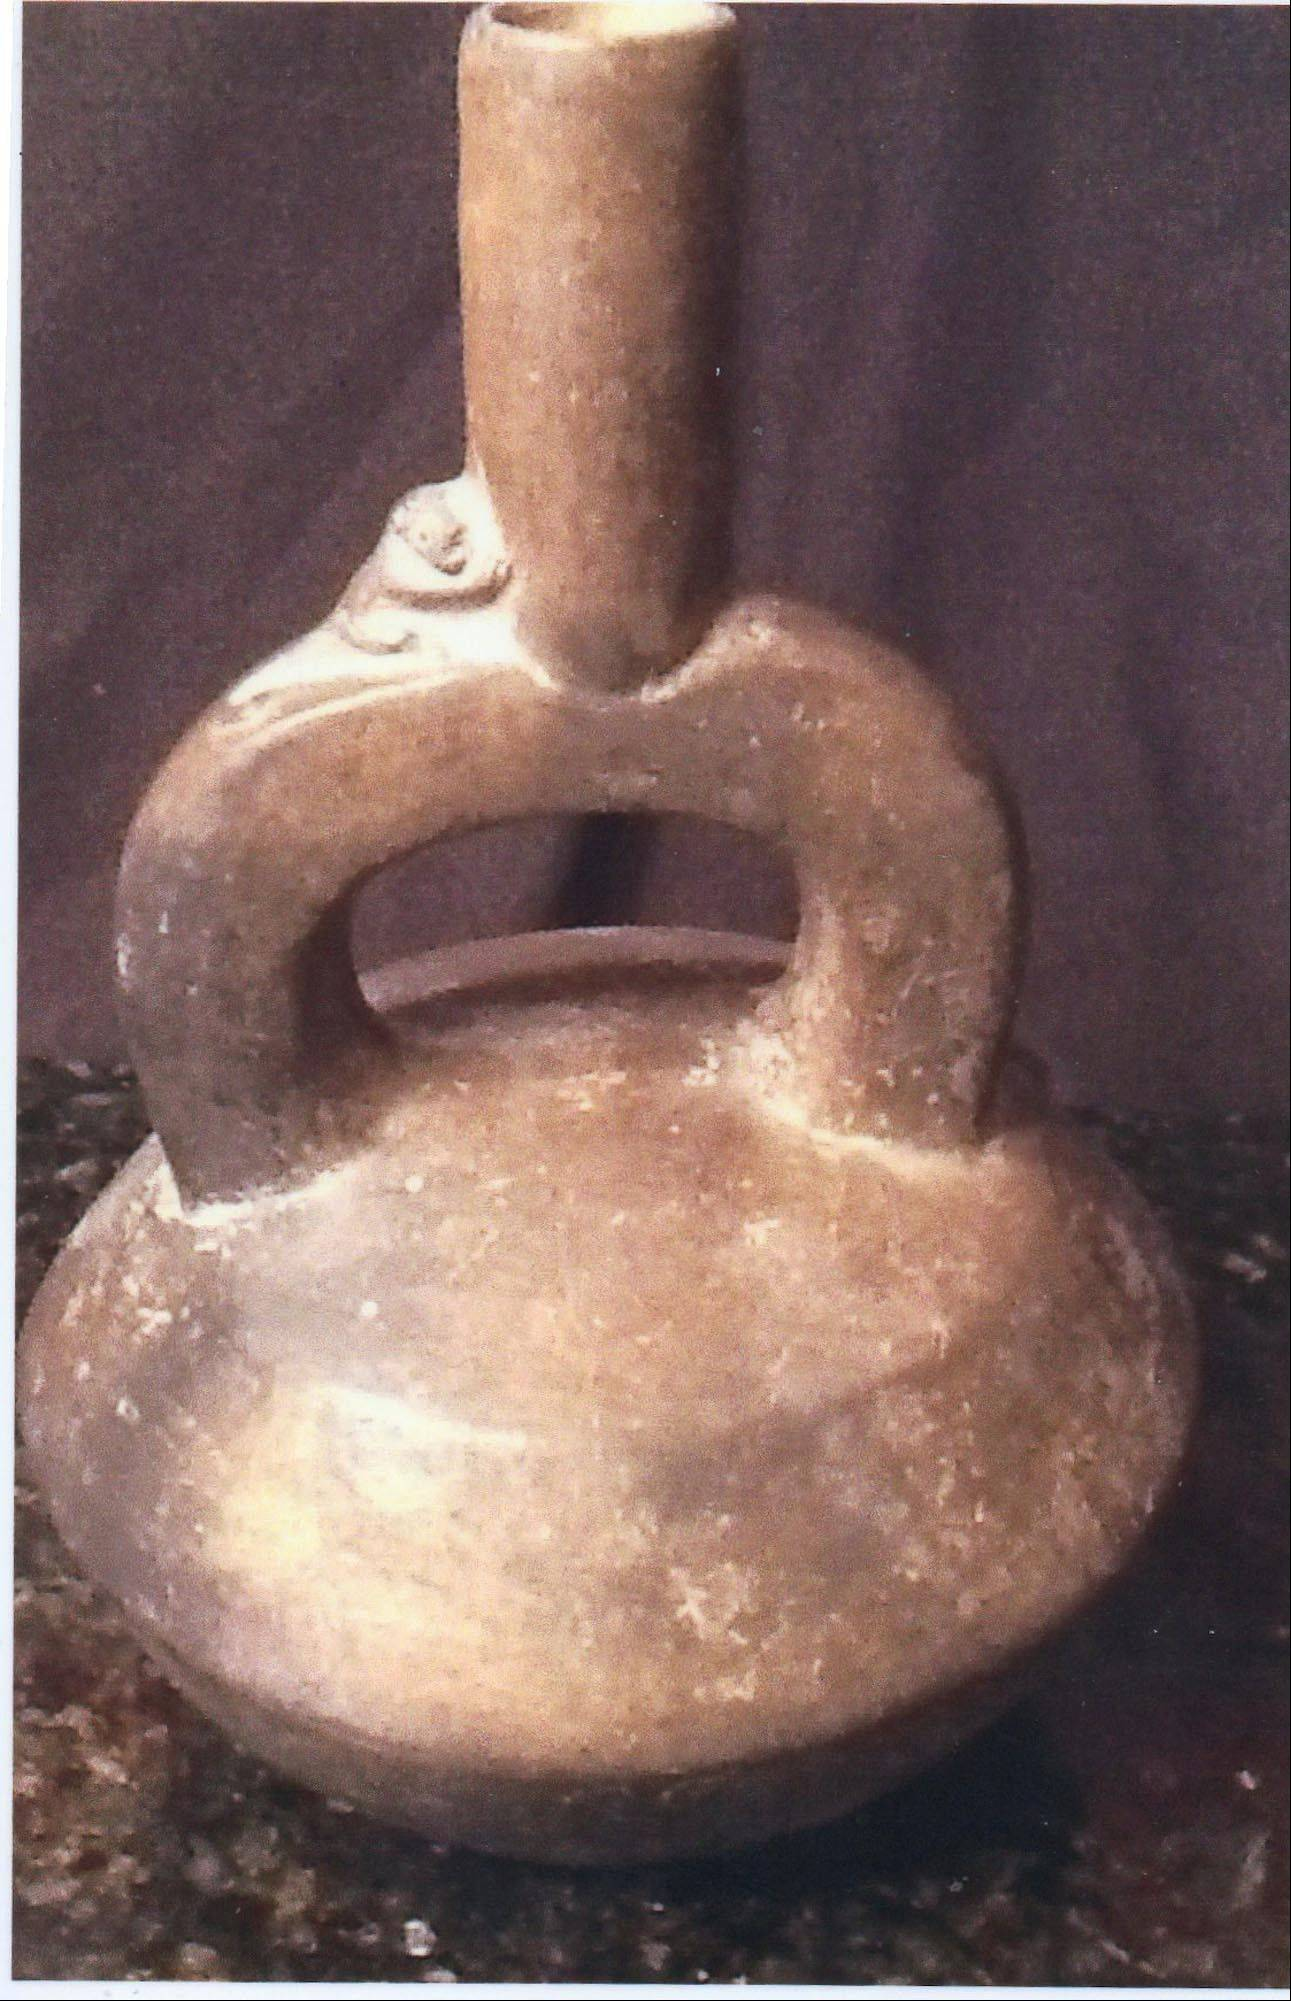 This stirrup vessel is a form popular with pre-Columbian people mainly located in Peru � but is it old?